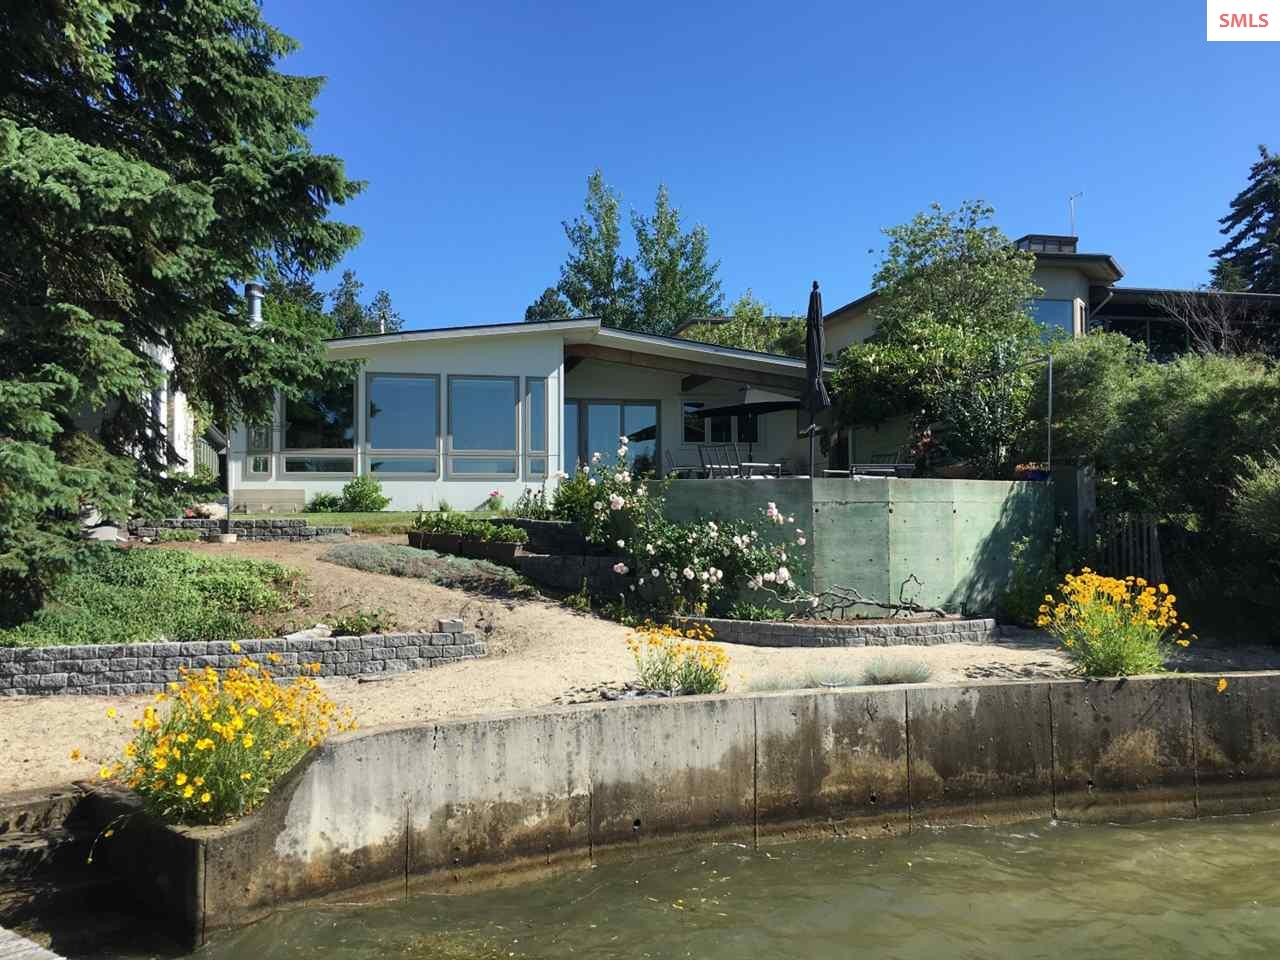 104 A E Pacific St., Sandpoint, ID 83864